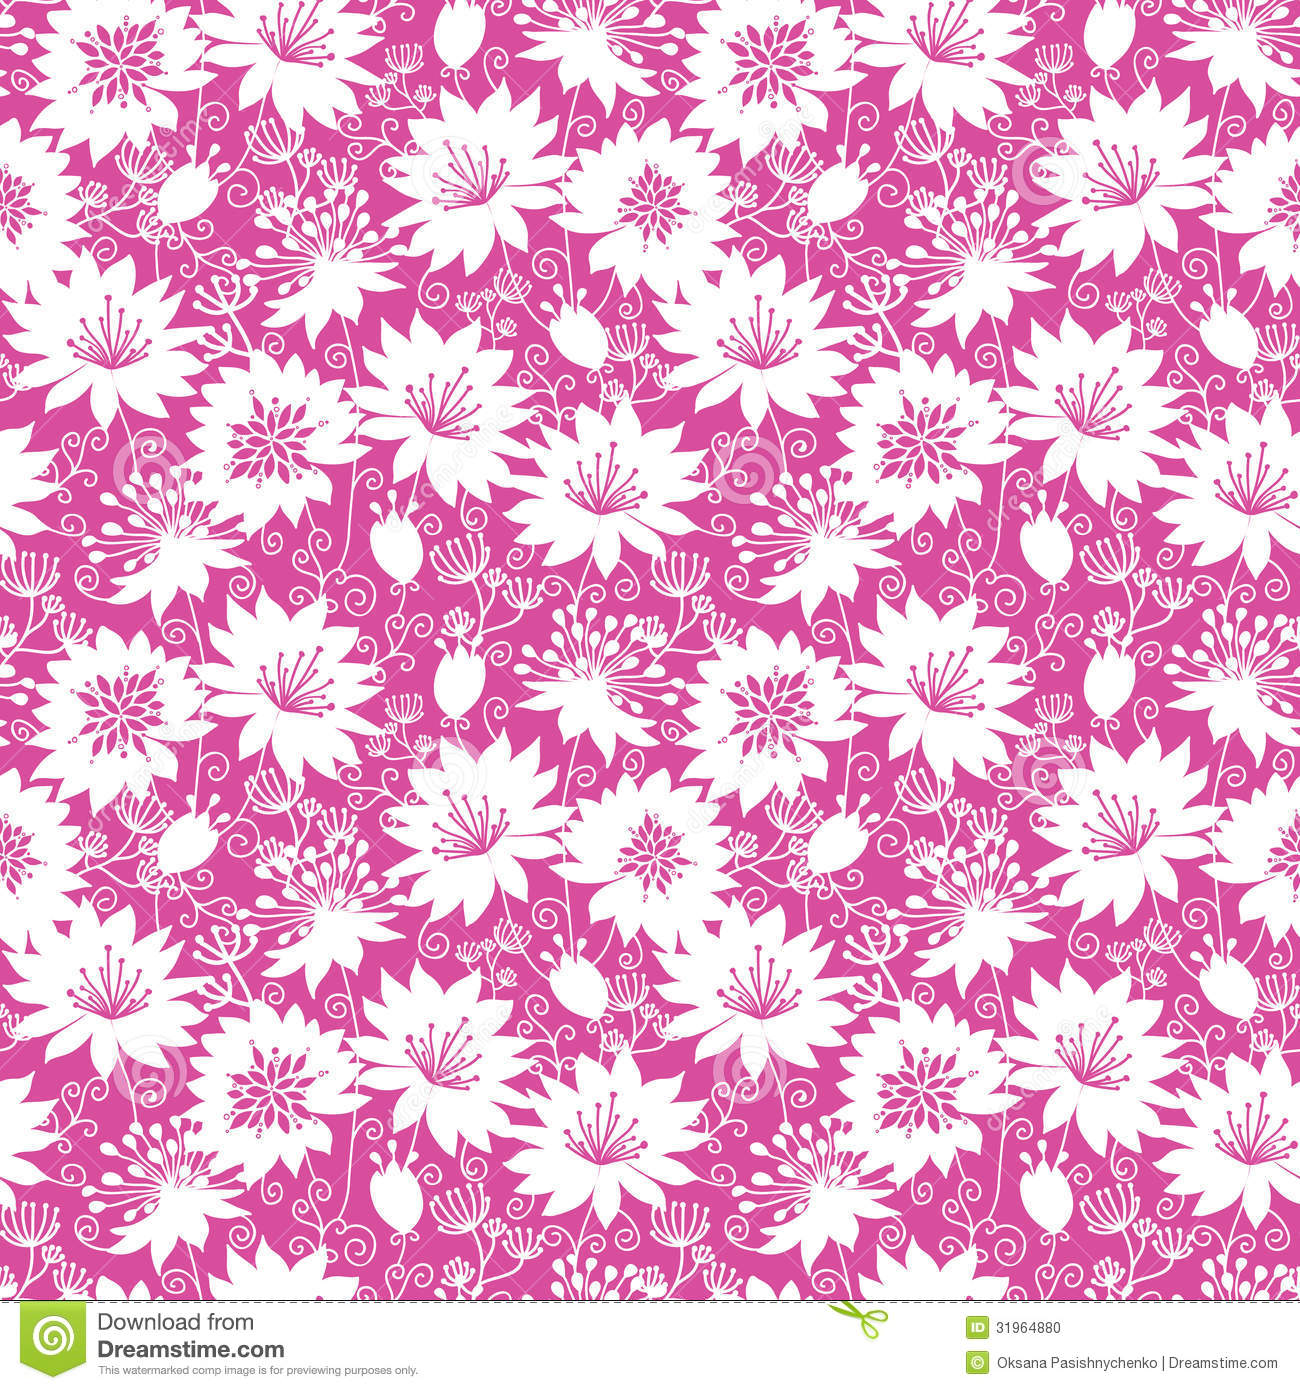 Seamless pink floral pattern - photo#39